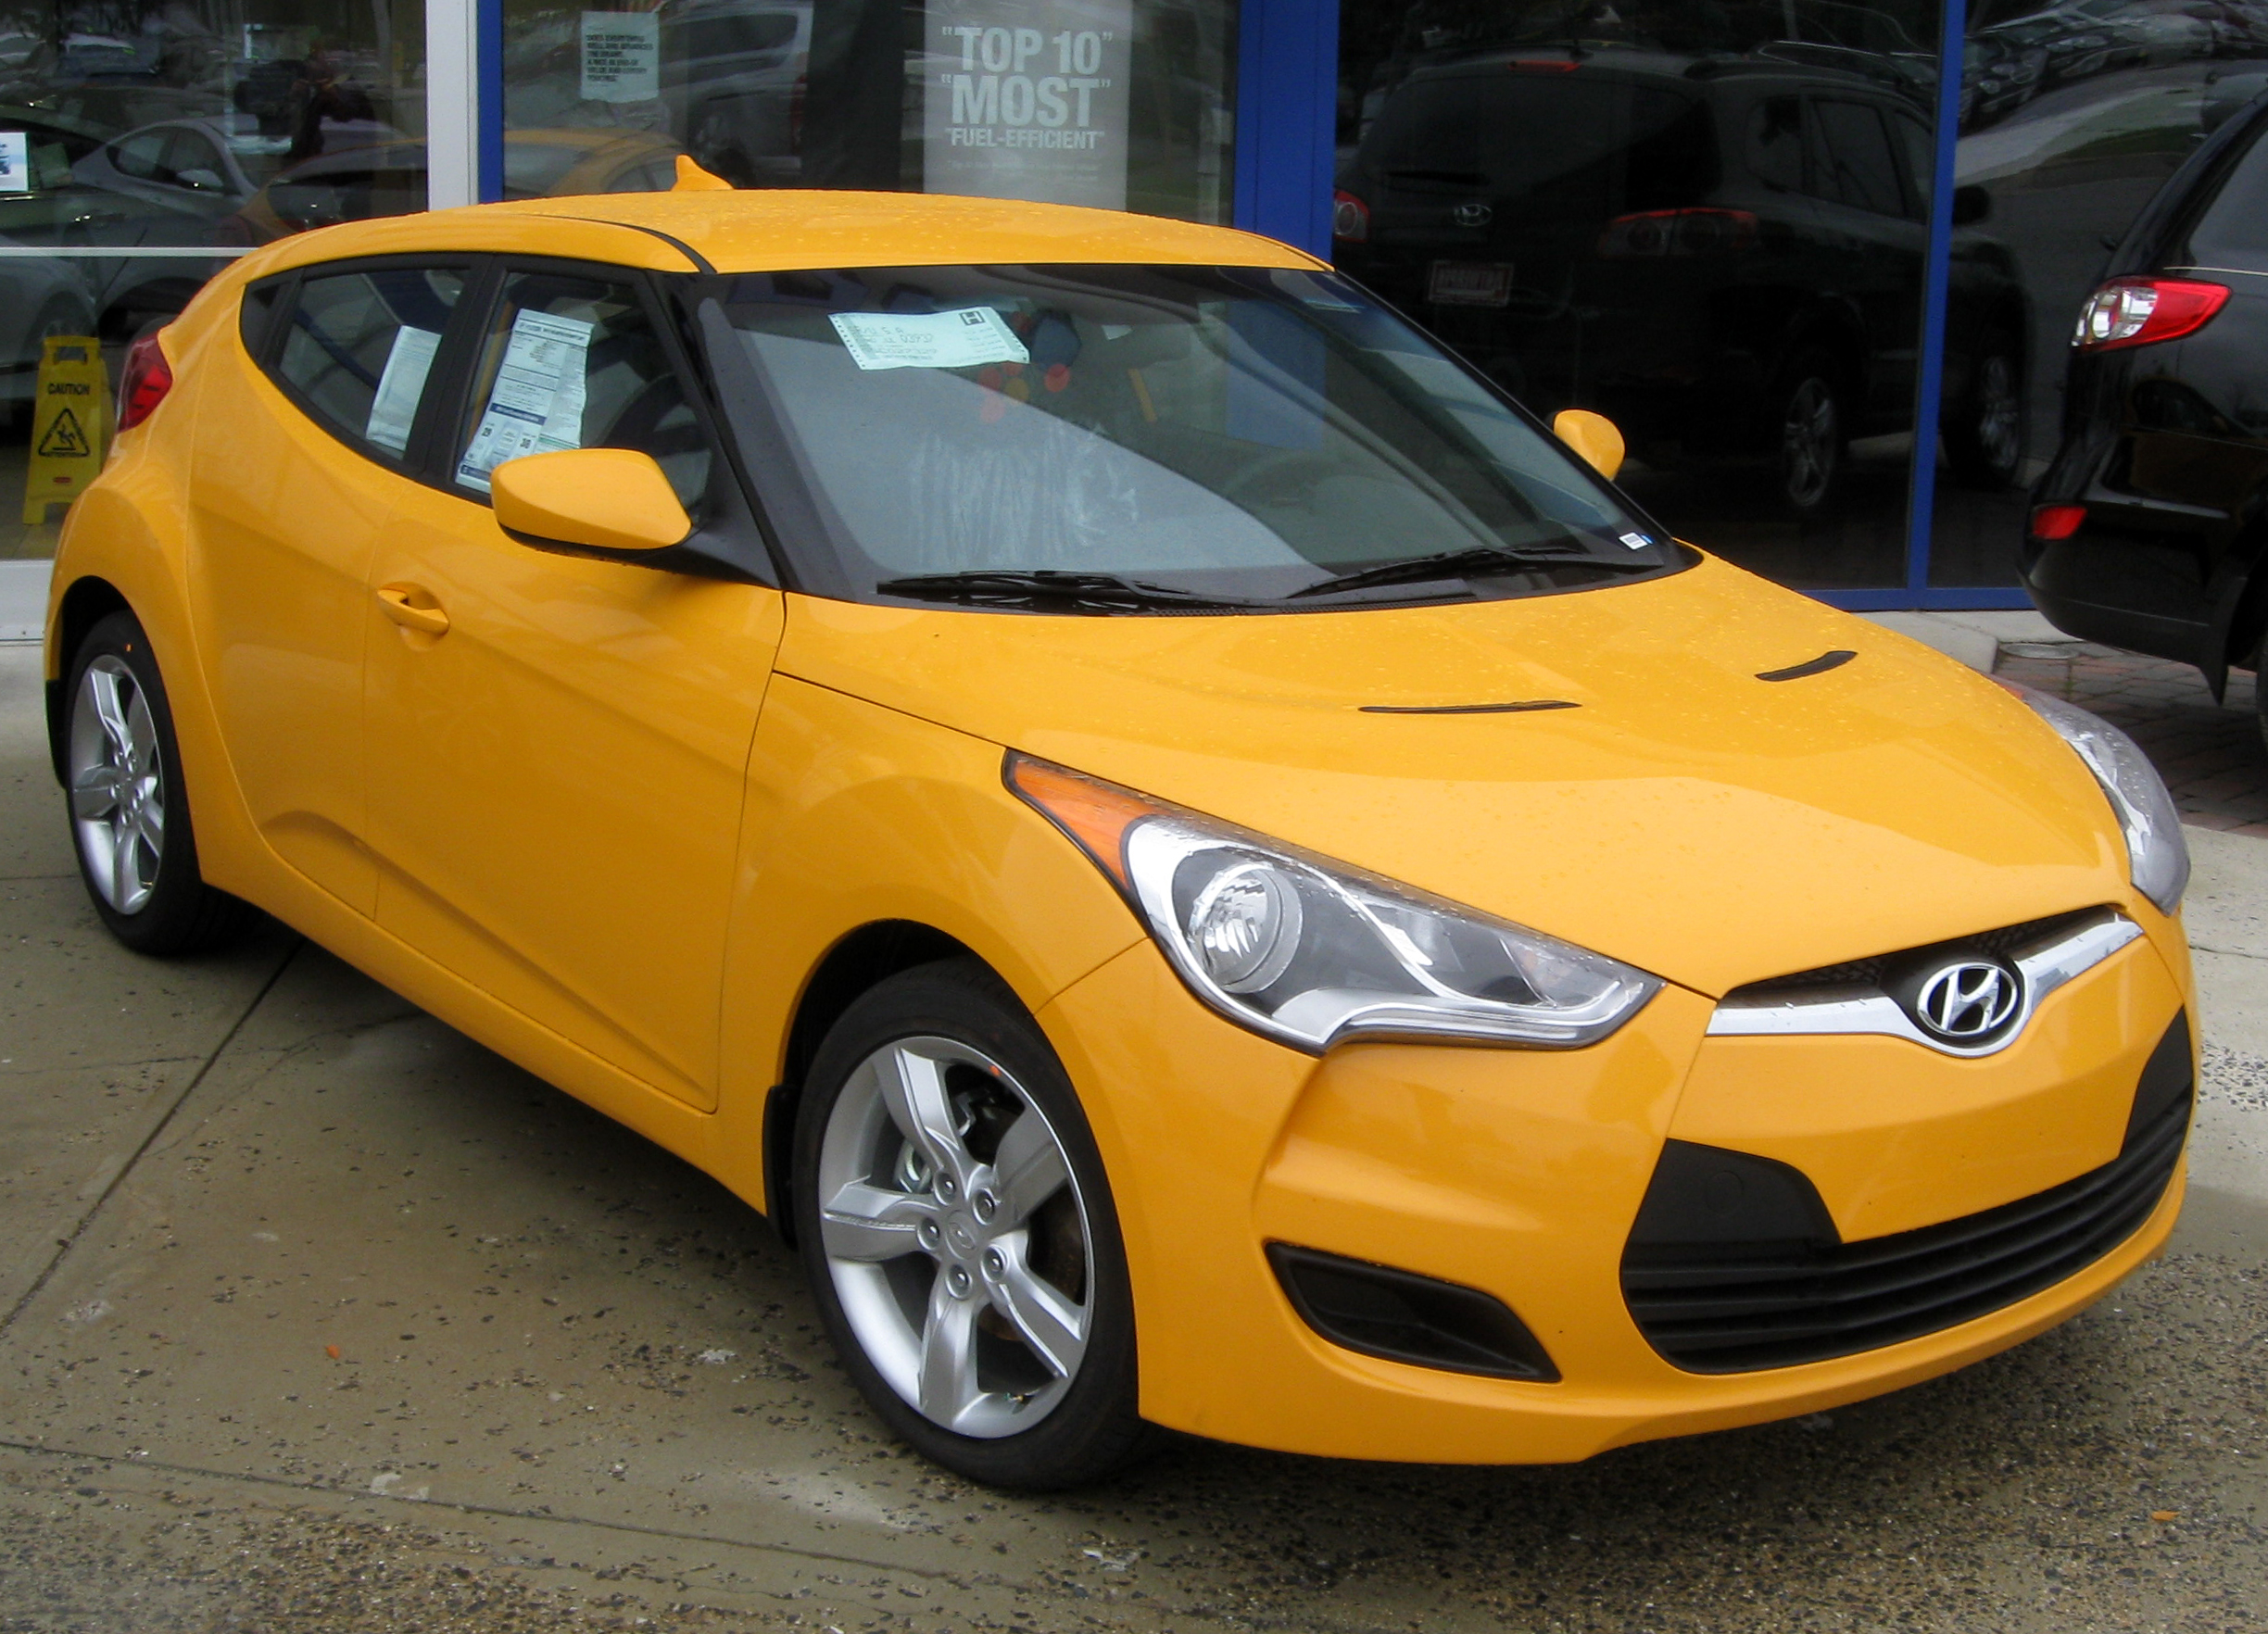 Image result for hyundai veloster 2012